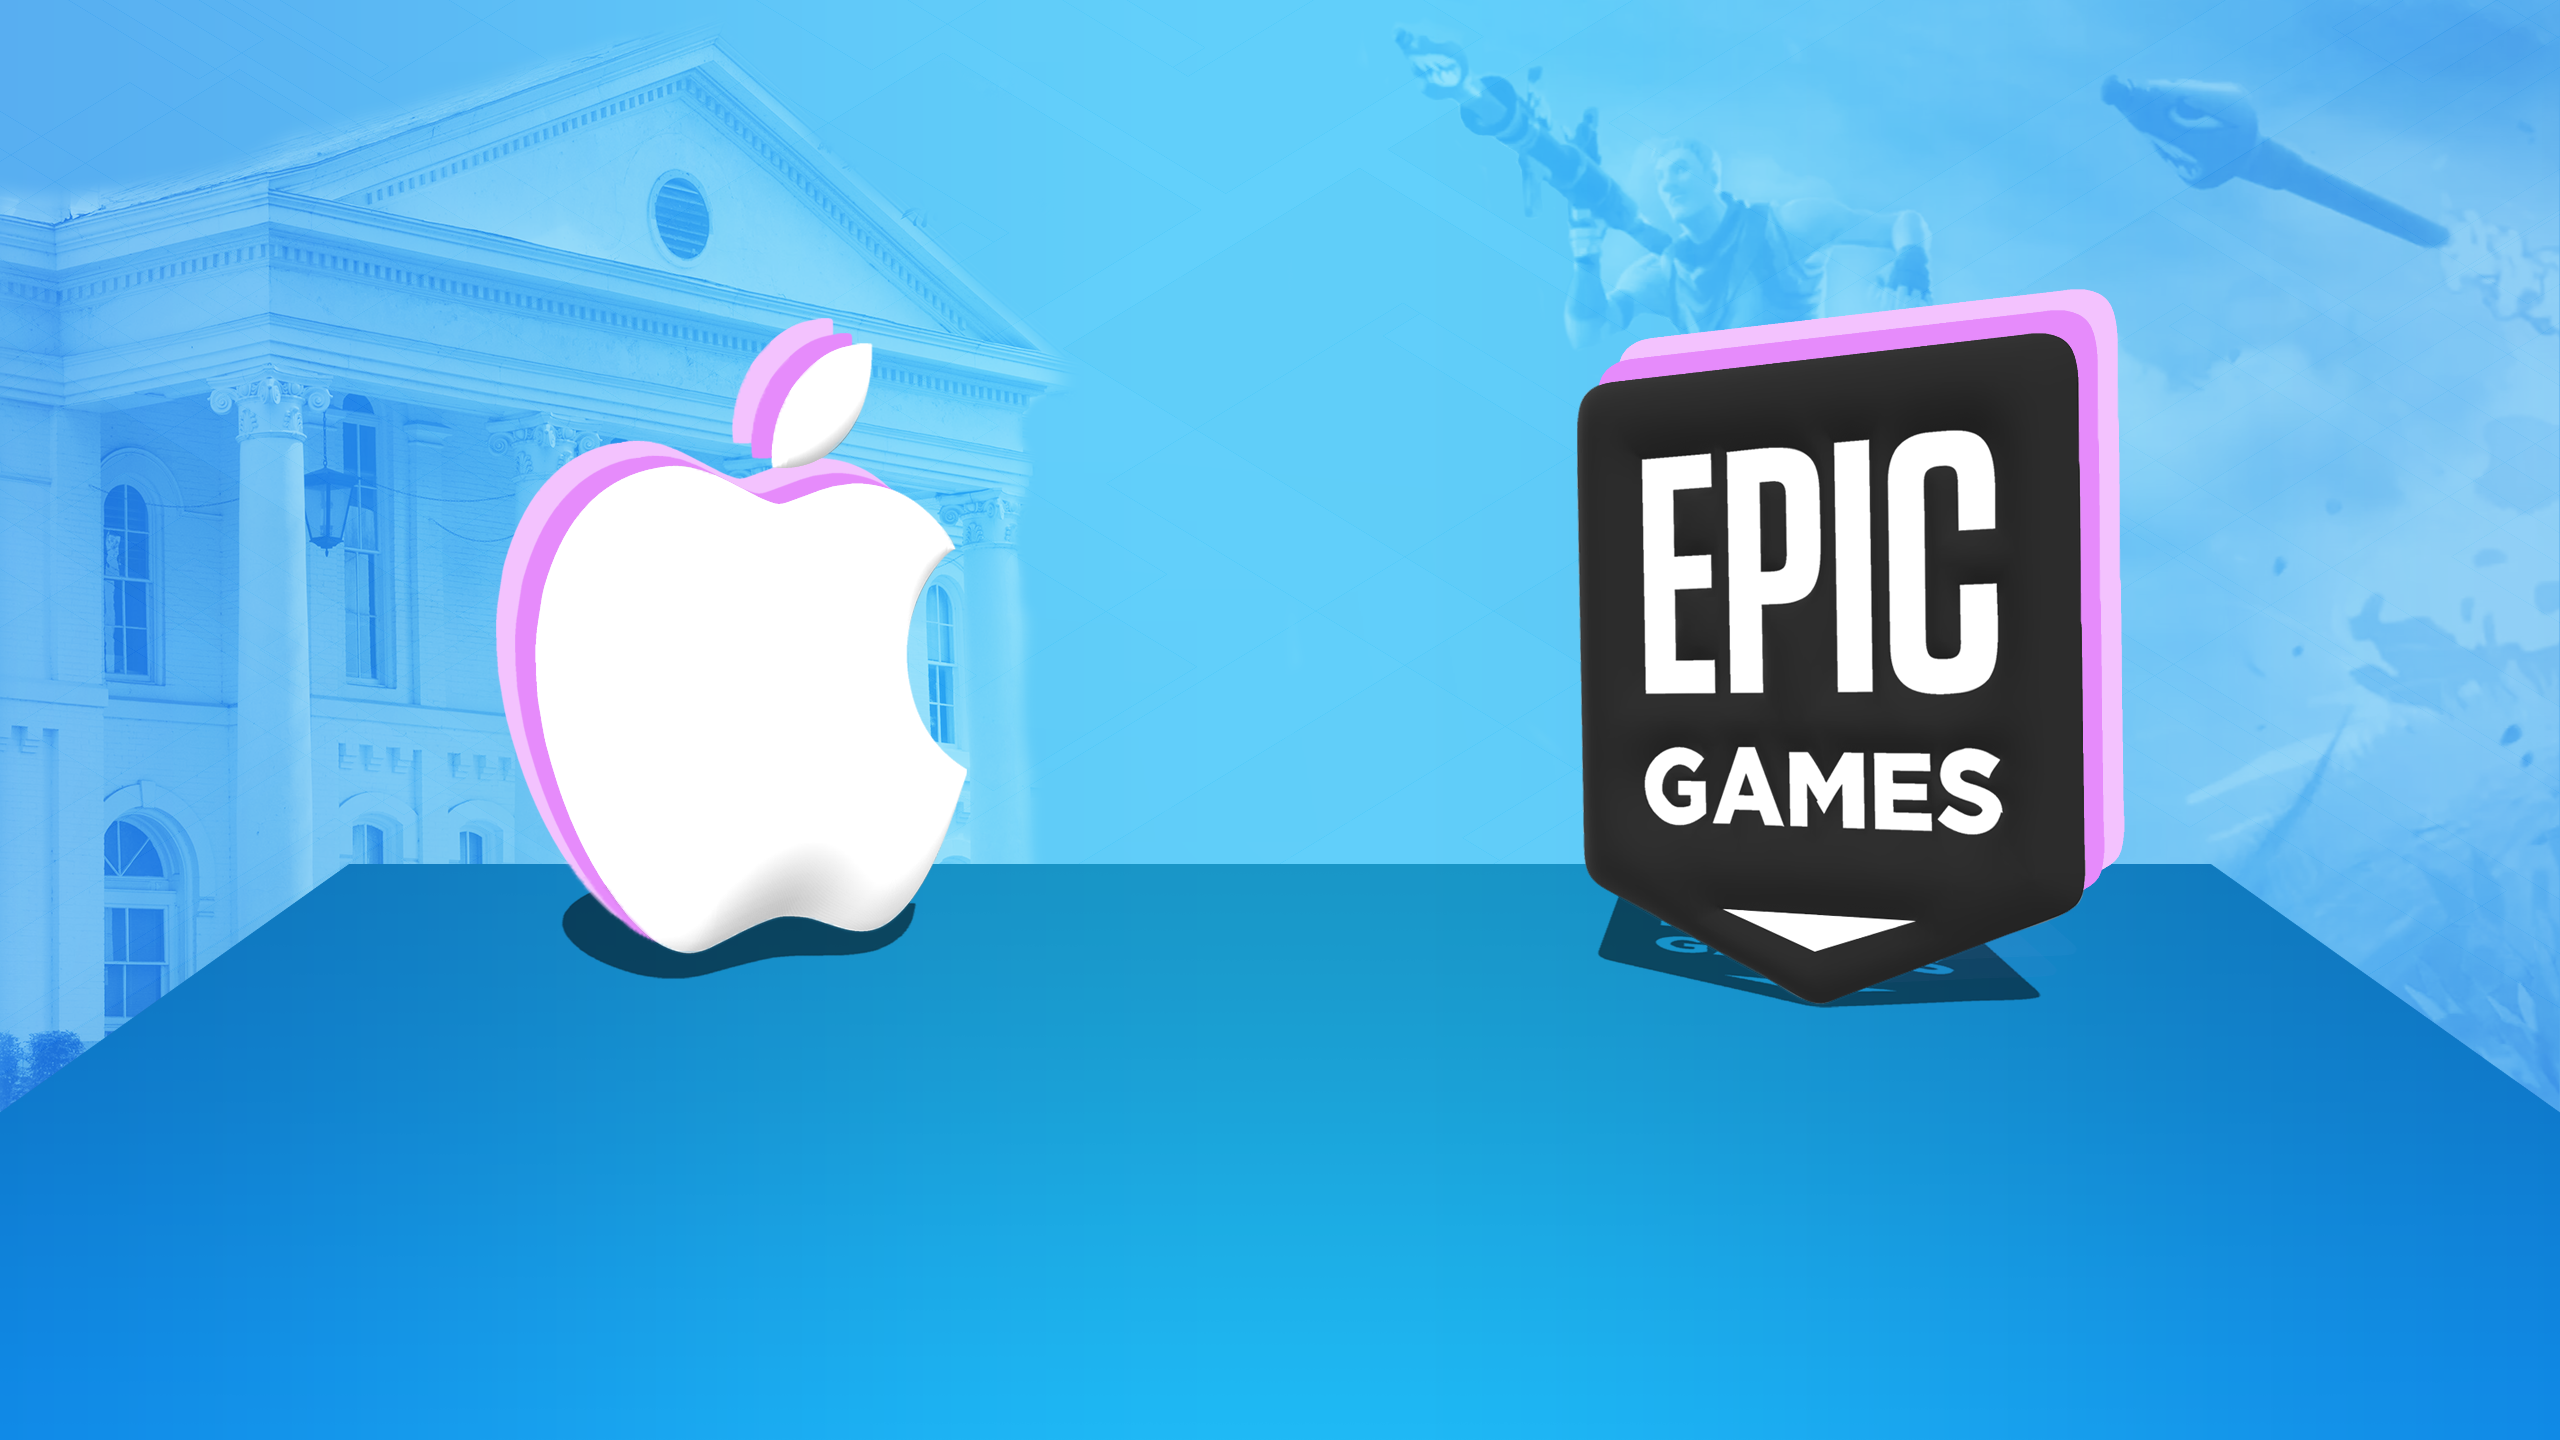 Don't expect Fortnite on the Apple App Store anytime soon